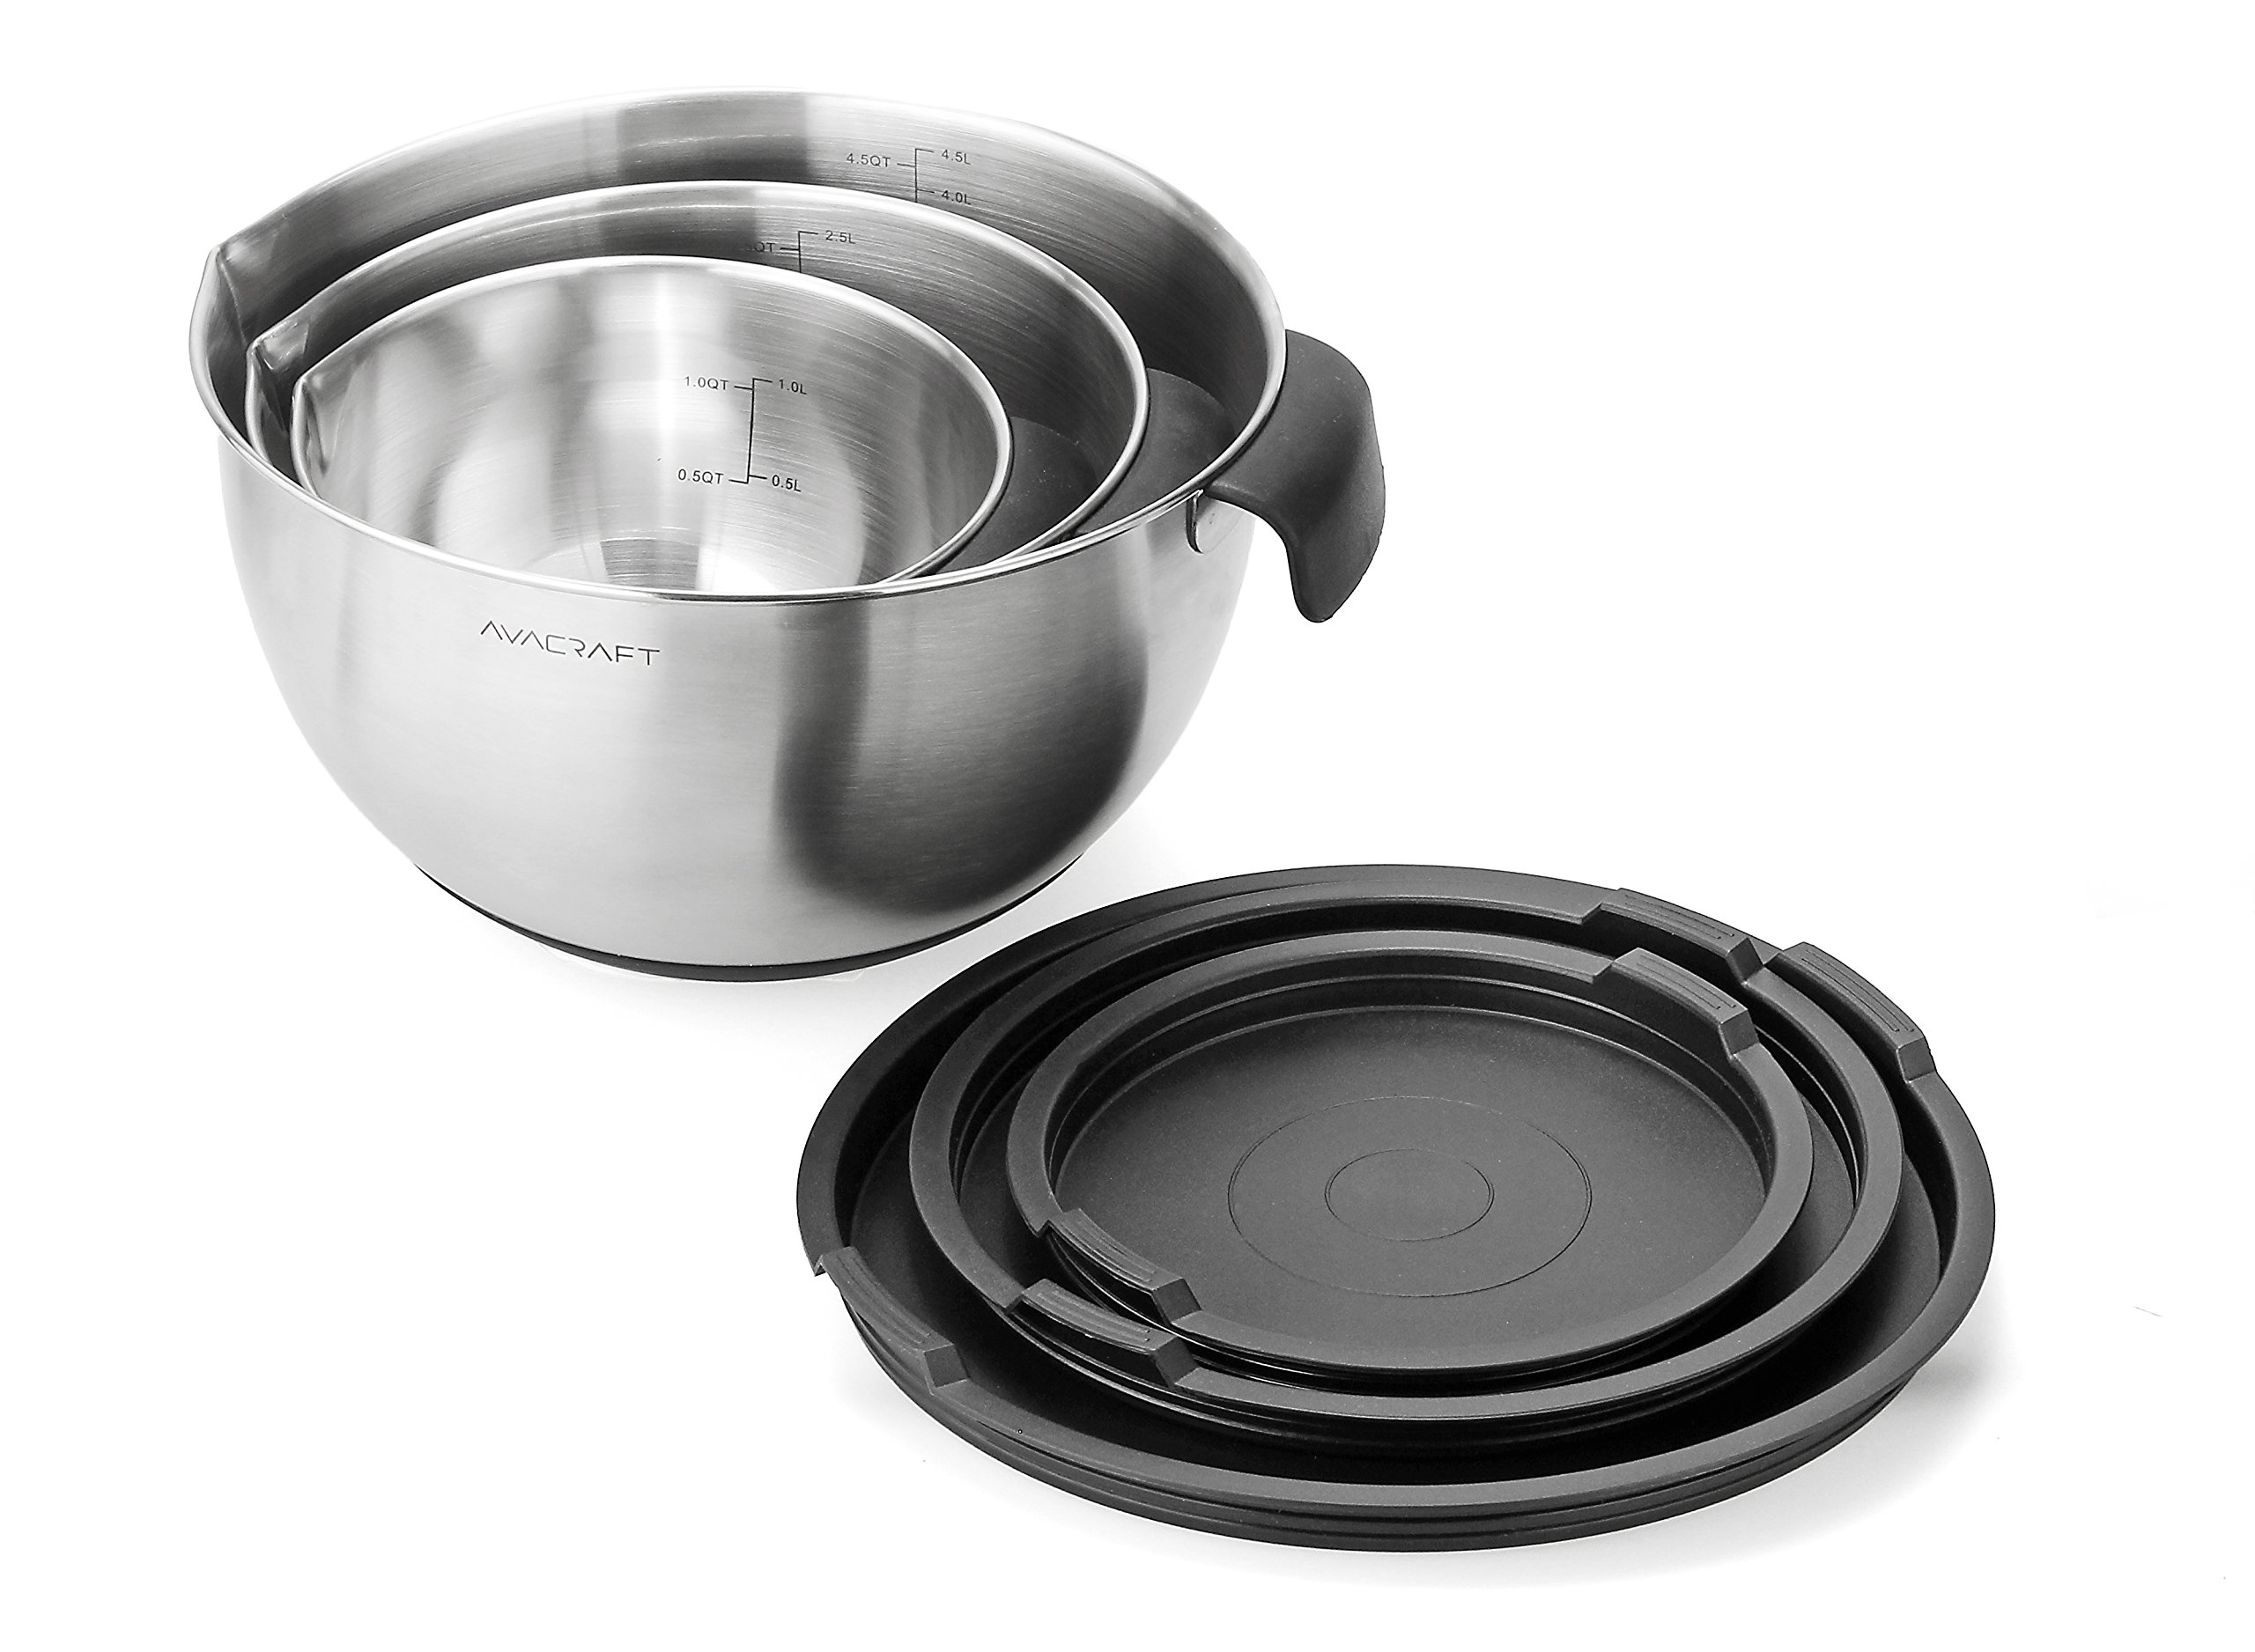 avacraft 18 10 stainless steel mixing bowl set with lids non slip silicone 730792398411 ebay. Black Bedroom Furniture Sets. Home Design Ideas